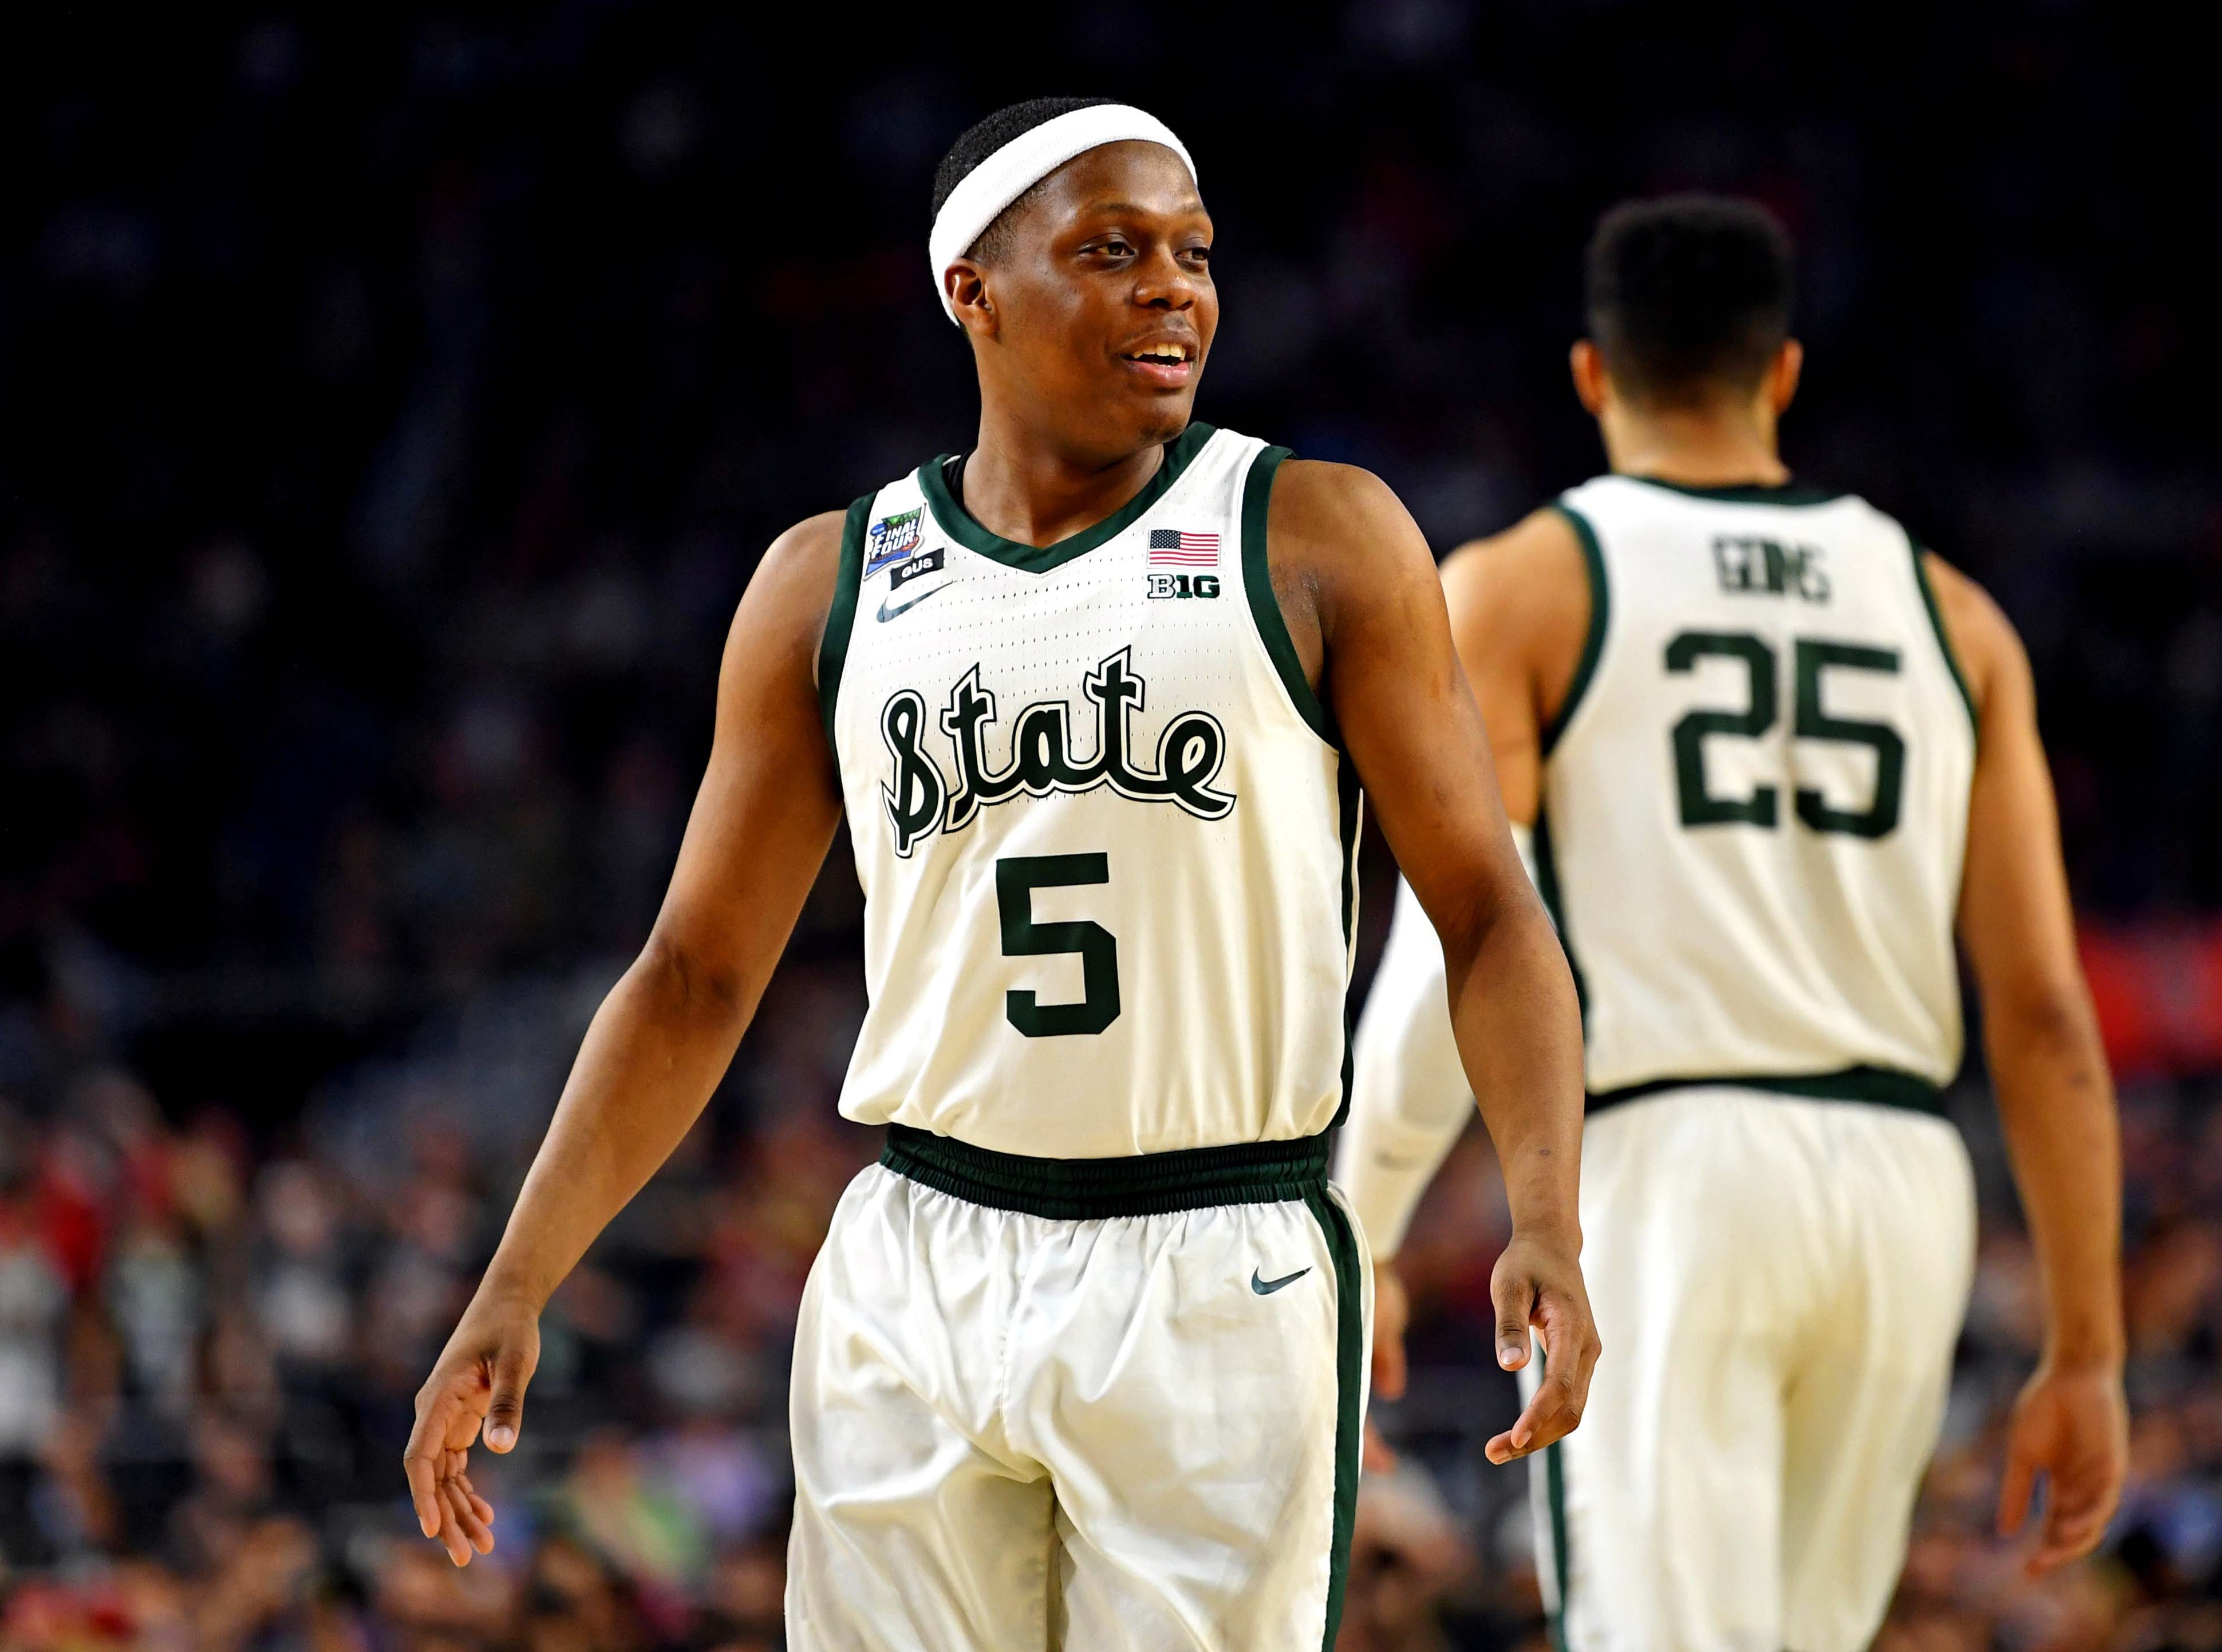 Apr 6, 2019; Minneapolis, MN, USA; Michigan State Spartans guard Cassius Winston (5) before the game against the Texas Tech Red Raiders in the semifinals of the 2019 men's Final Four at US Bank Stadium. Mandatory Credit: Bob Donnan-USA TODAY Sports